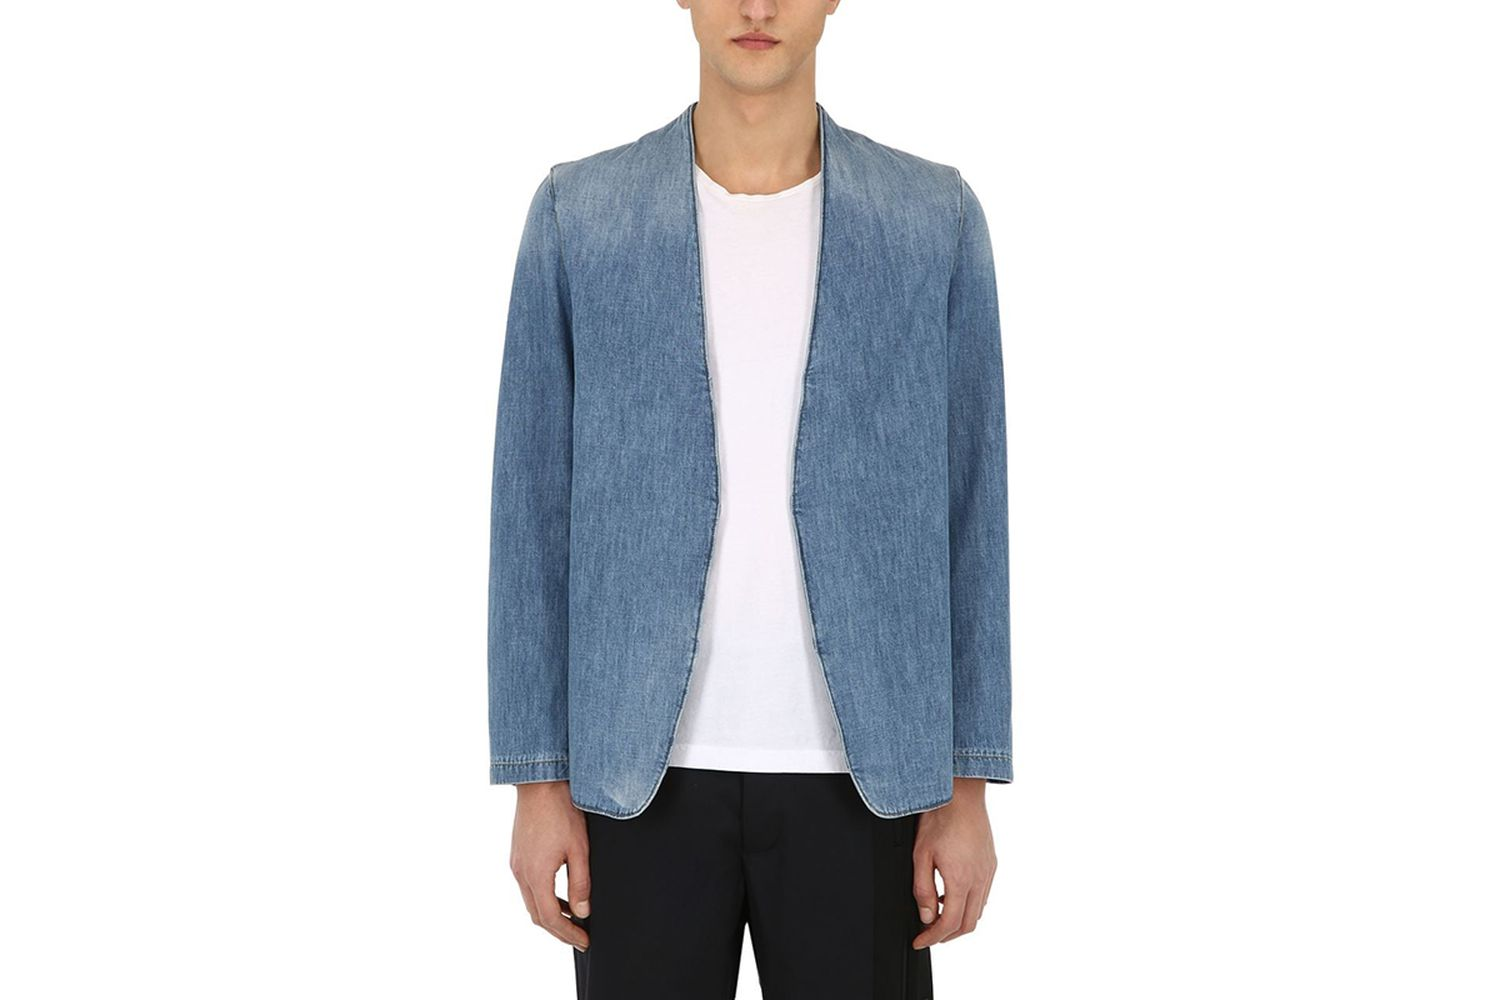 Denim Cardigan Jacket